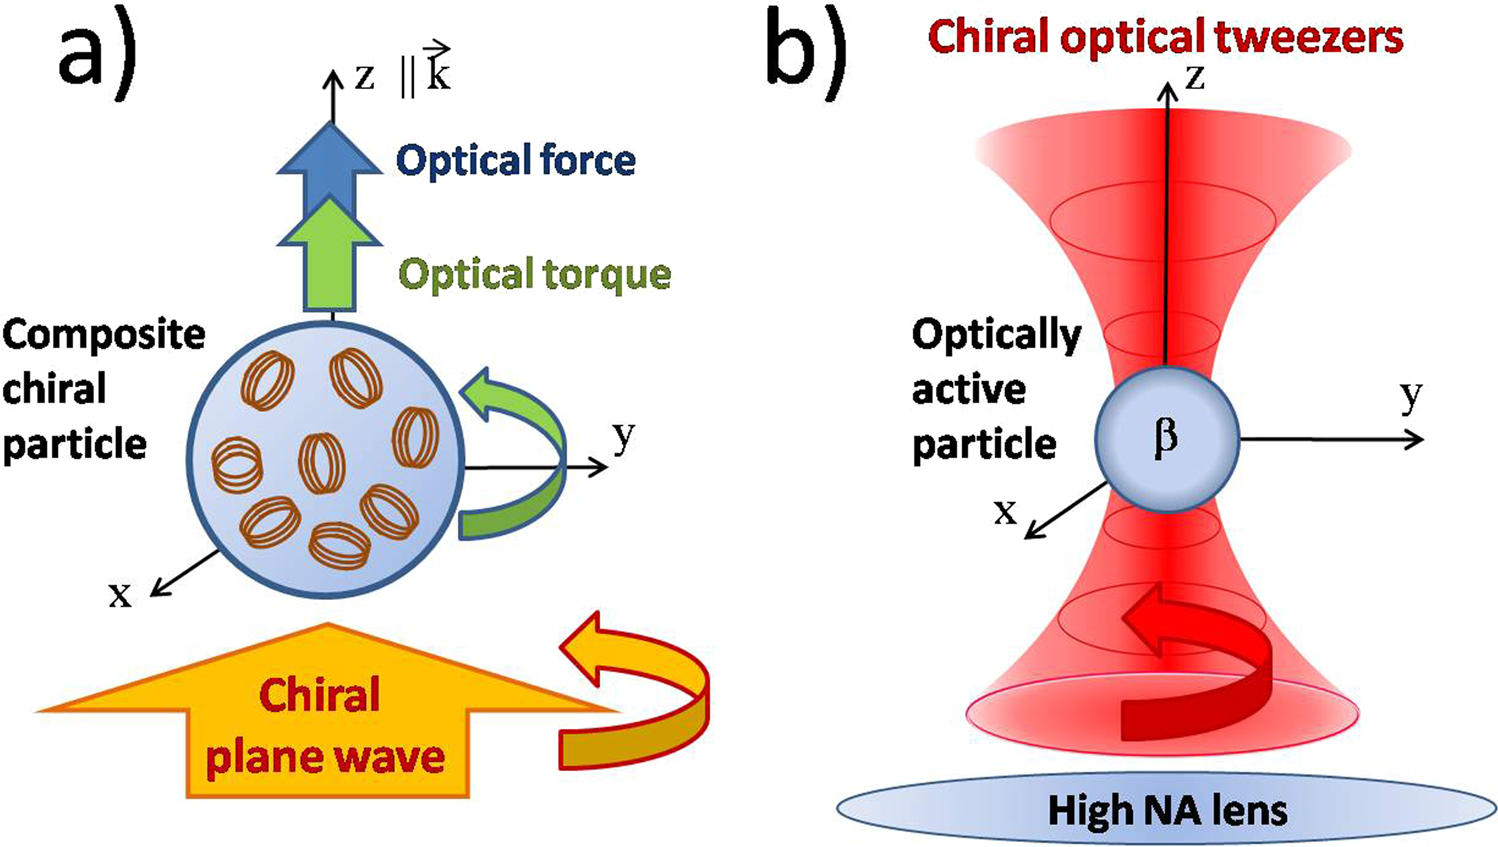 Chiral optical tweezers for optically active particles in